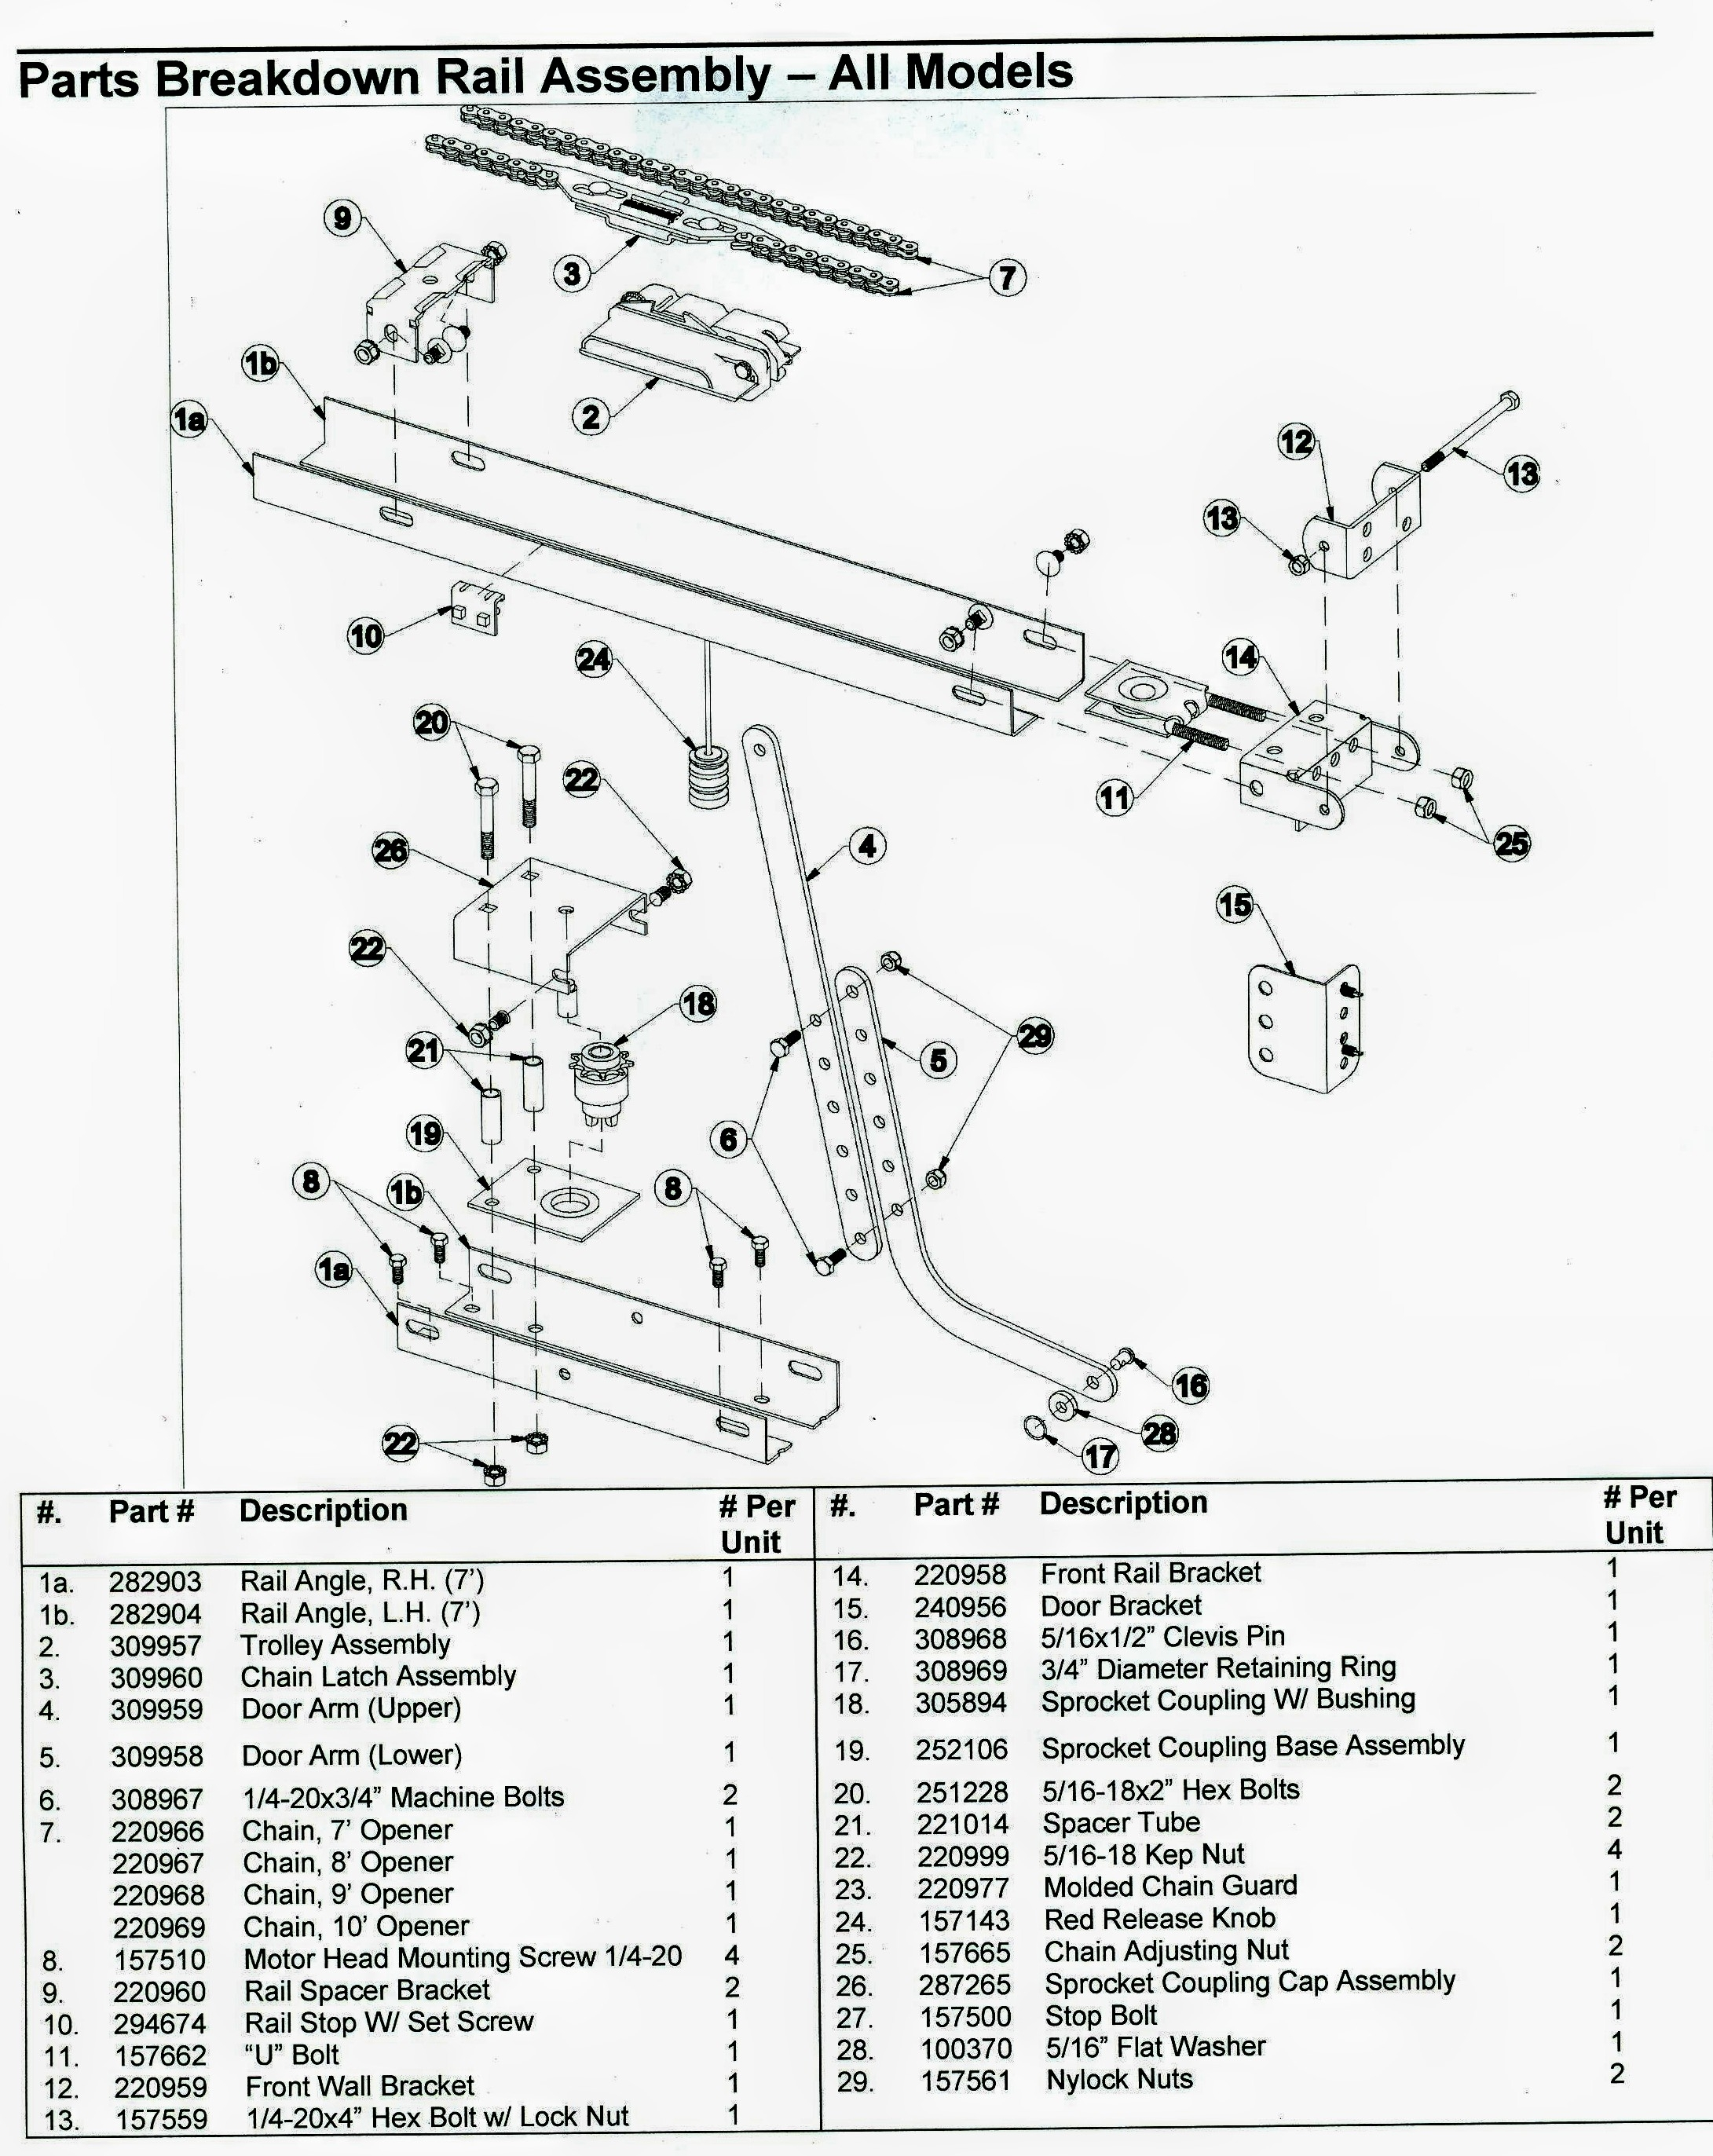 wiring diagram for liftmaster garage door opener on free throughout chamberlain garage door opener parts diagram wiring diagram for liftmaster garage door opener on free chamberlain liftmaster wiring diagram at gsmx.co